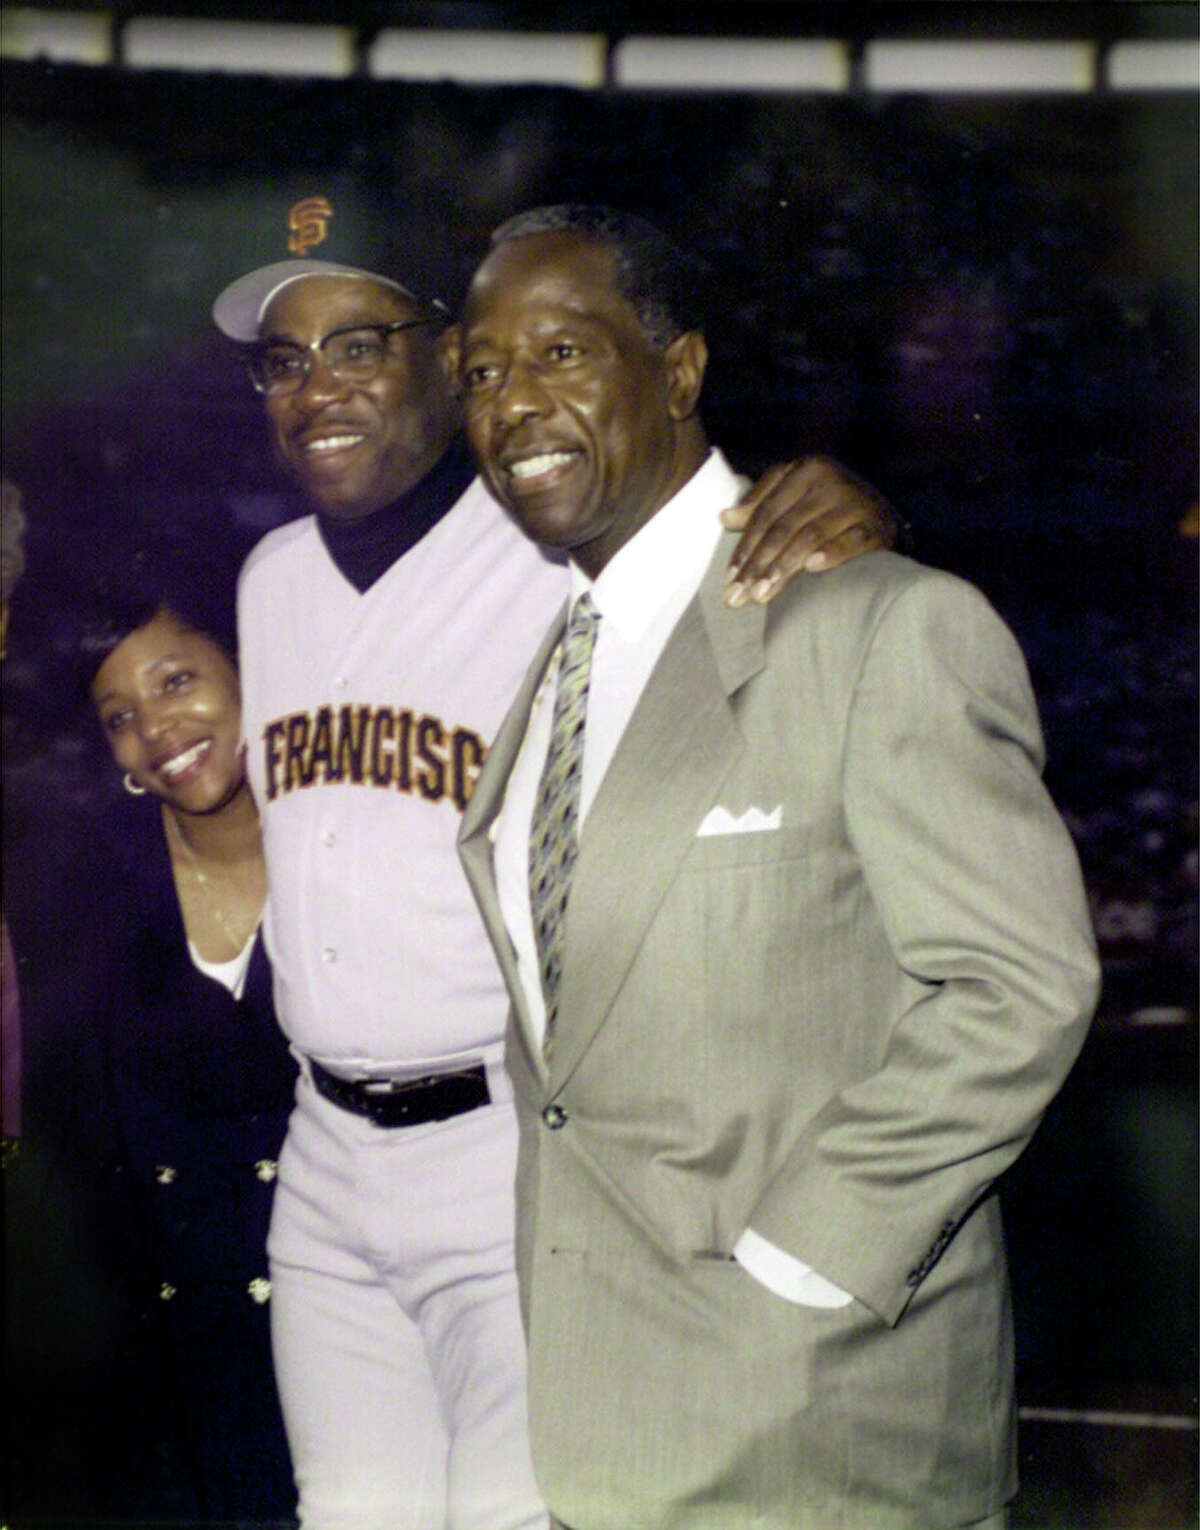 Portraits of San Francisco Giants manager Dusty Baker (L) with Hank Aaron. SAN FRANCISCO CHRONICLE PHOTO BY CHRIS STEWART